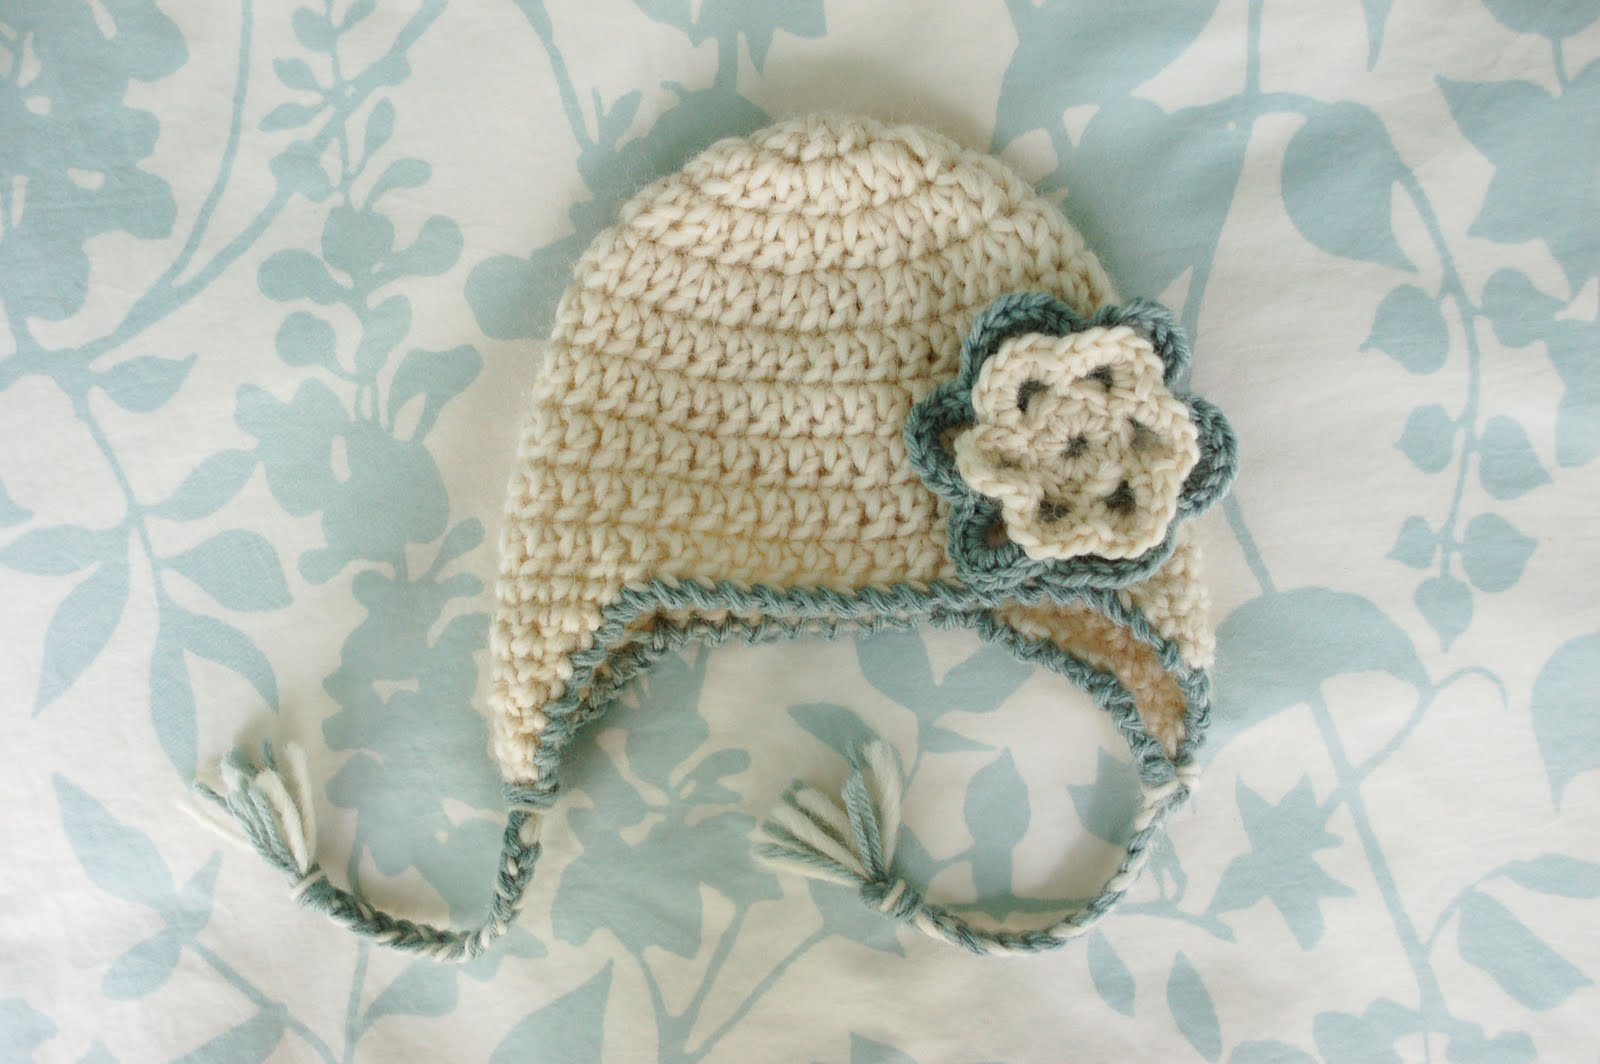 Newborn Crochet Hat Pattern With Ear Flaps : Crochet For Free: Newborn Earflap Hat